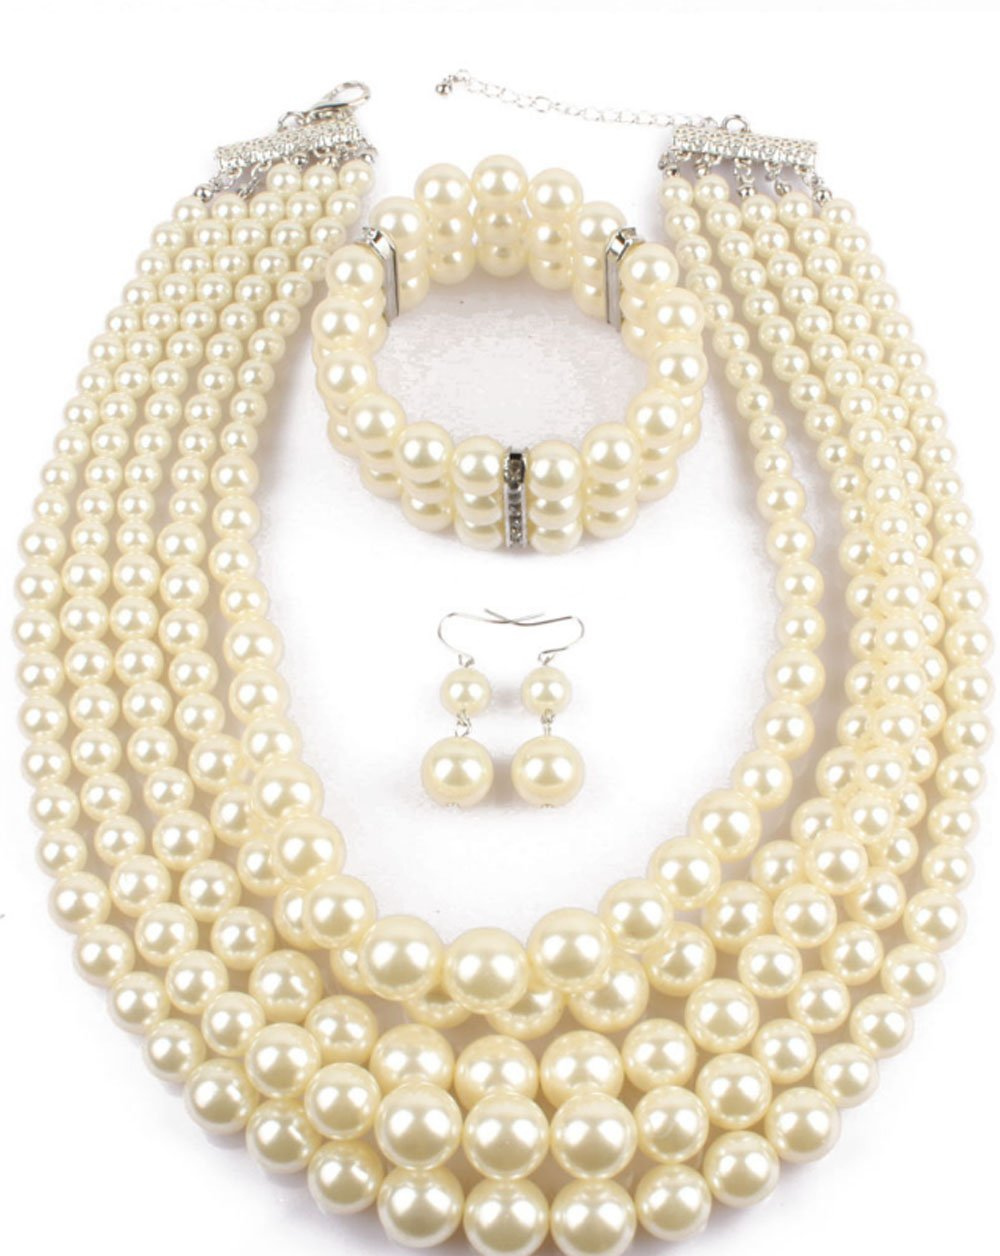 Shineland Elegant Multilayers Simulated Pearl Strand Cluster Collar Bib Choker Costume Jewelry Sets (White)